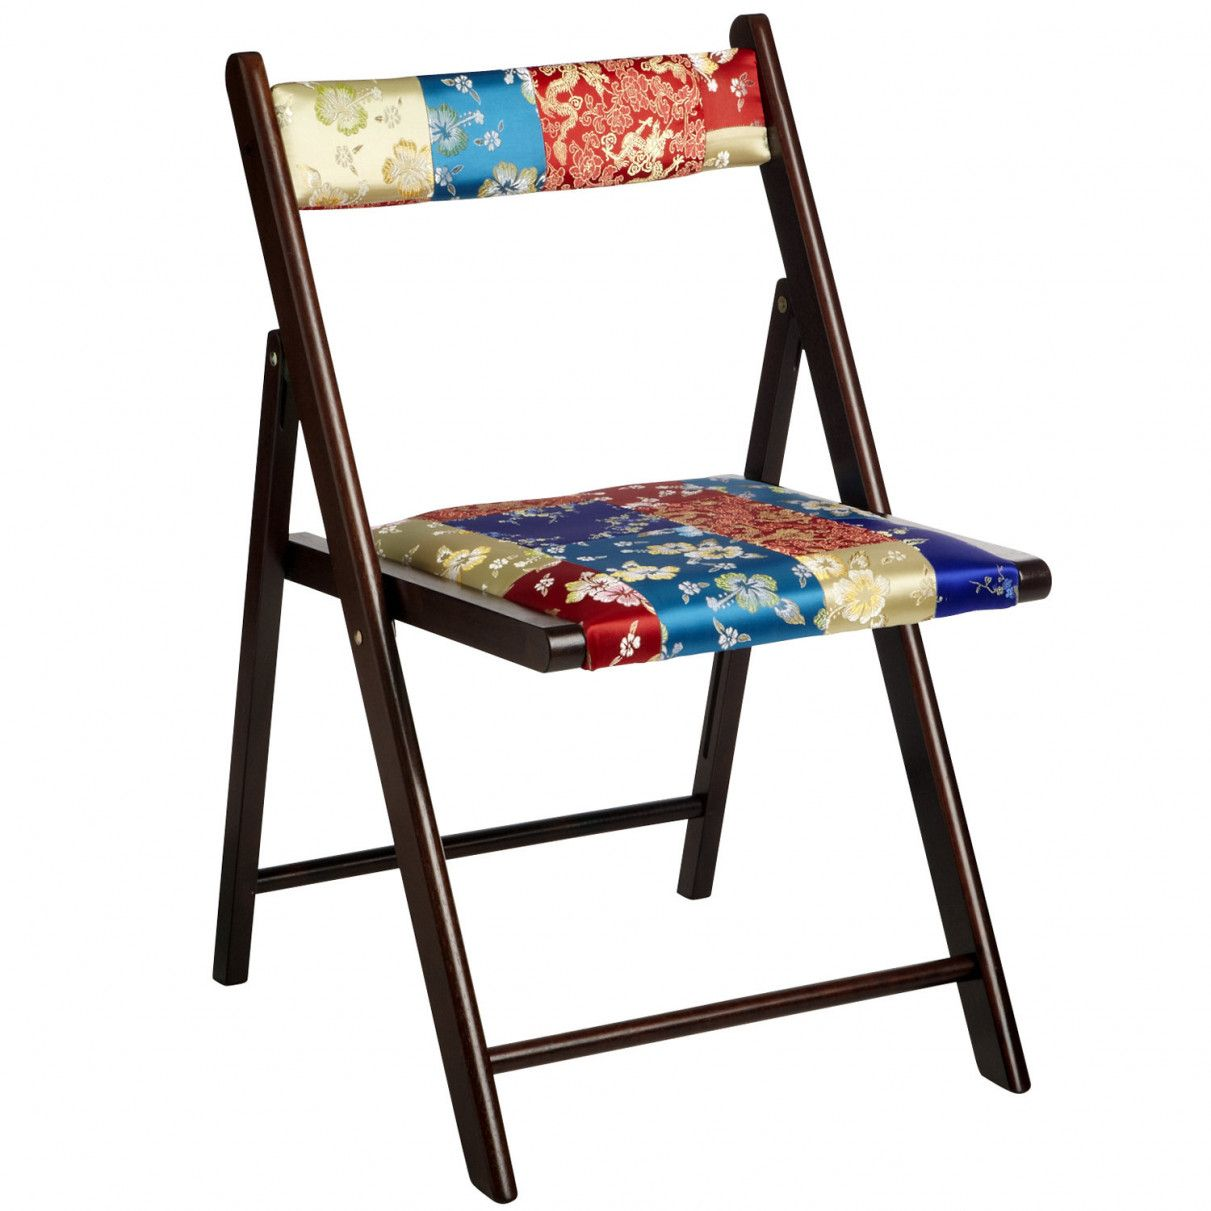 Pier One Folding Chairs Expensive Home Office Furniture Check More At Http